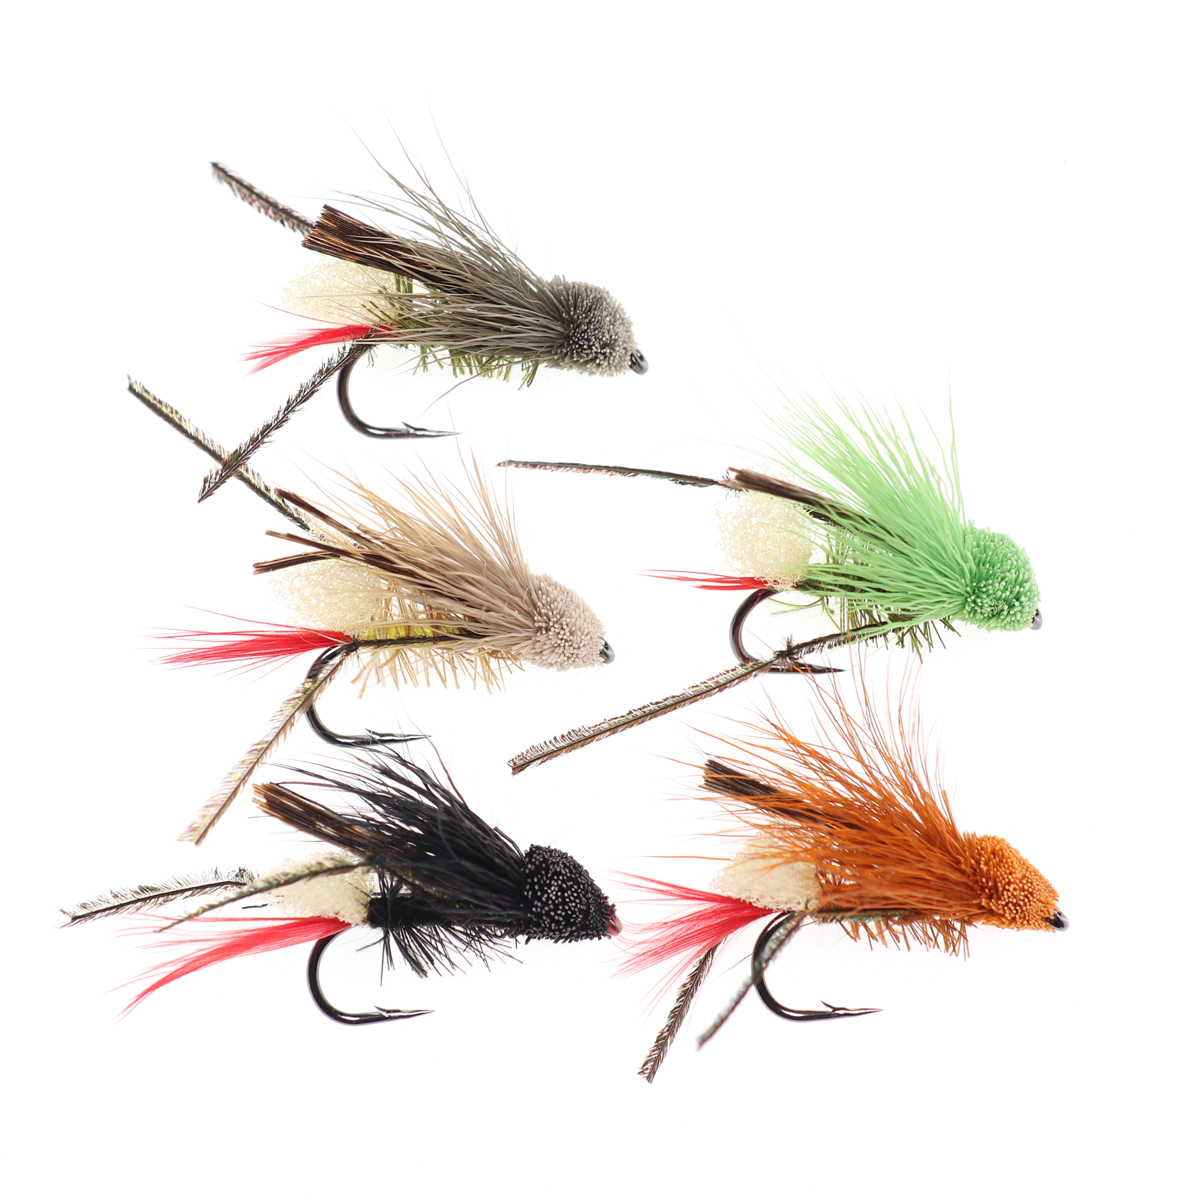 5PCS #10 Trout Fishing Fly Grass Hopper Fly terrestrial Hopper Fly Floating Bass Crappie Bug Bait Artificial Lure 7